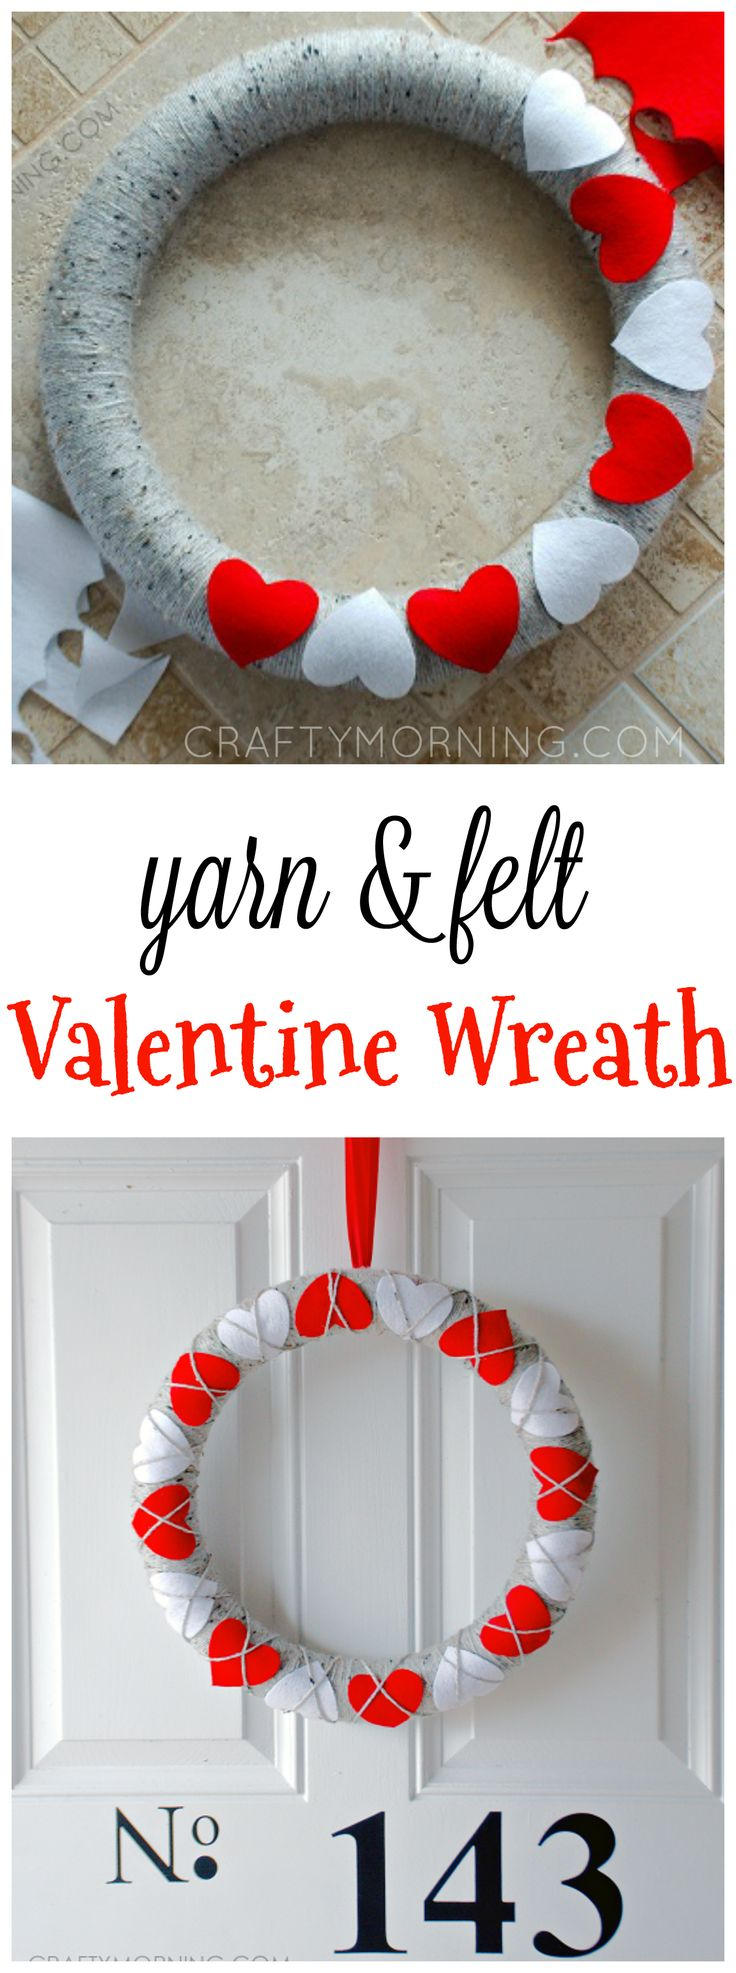 Cutest yarn and felt Valentine's day wreath craft to make! It's so easy even the kids could help! Perfect door hanger decoration.